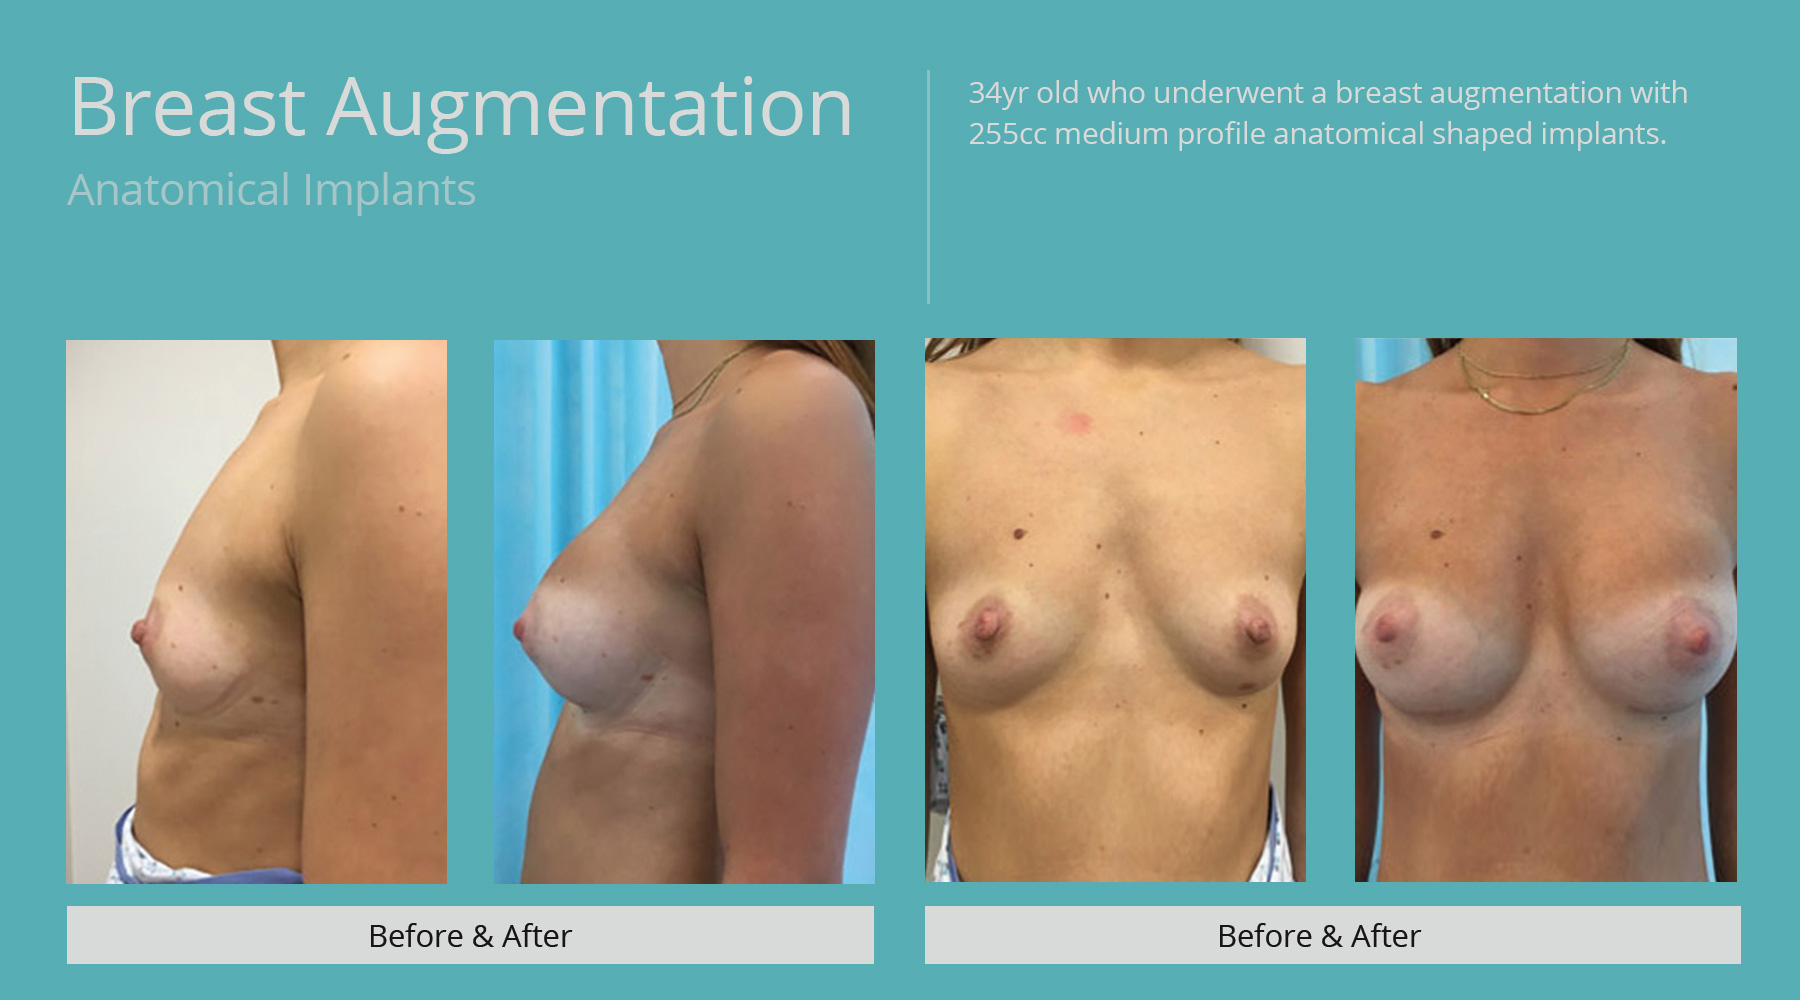 Breast-Augmentation-anatomical-4